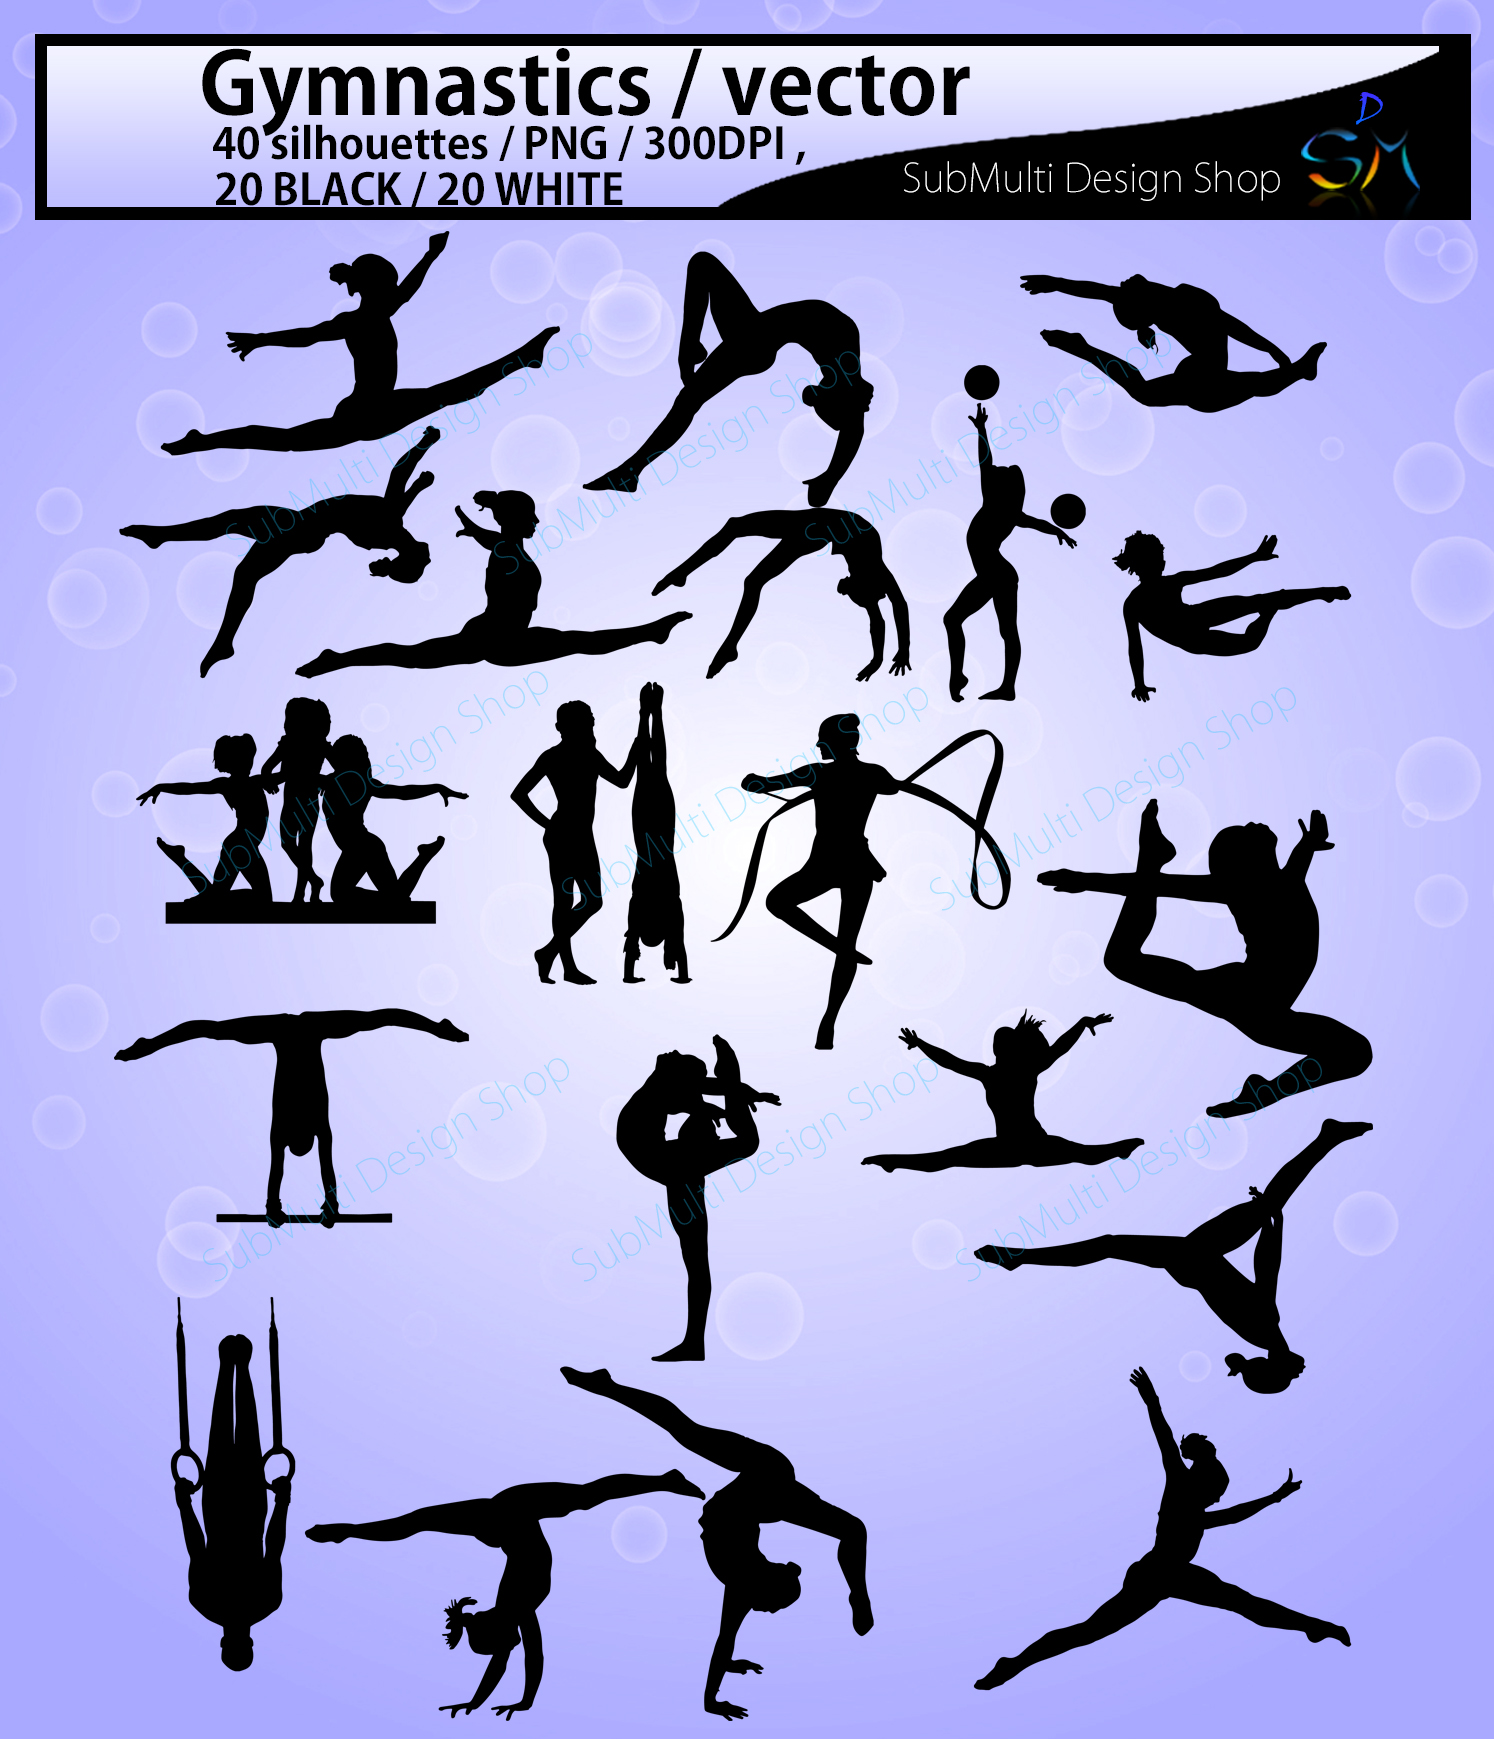 Gymnastics silhouette svg / Gymnastics clipart / silhouette / Gymnastics printable vector file : black and white / SVG / Png / EPS / DXf example image 2